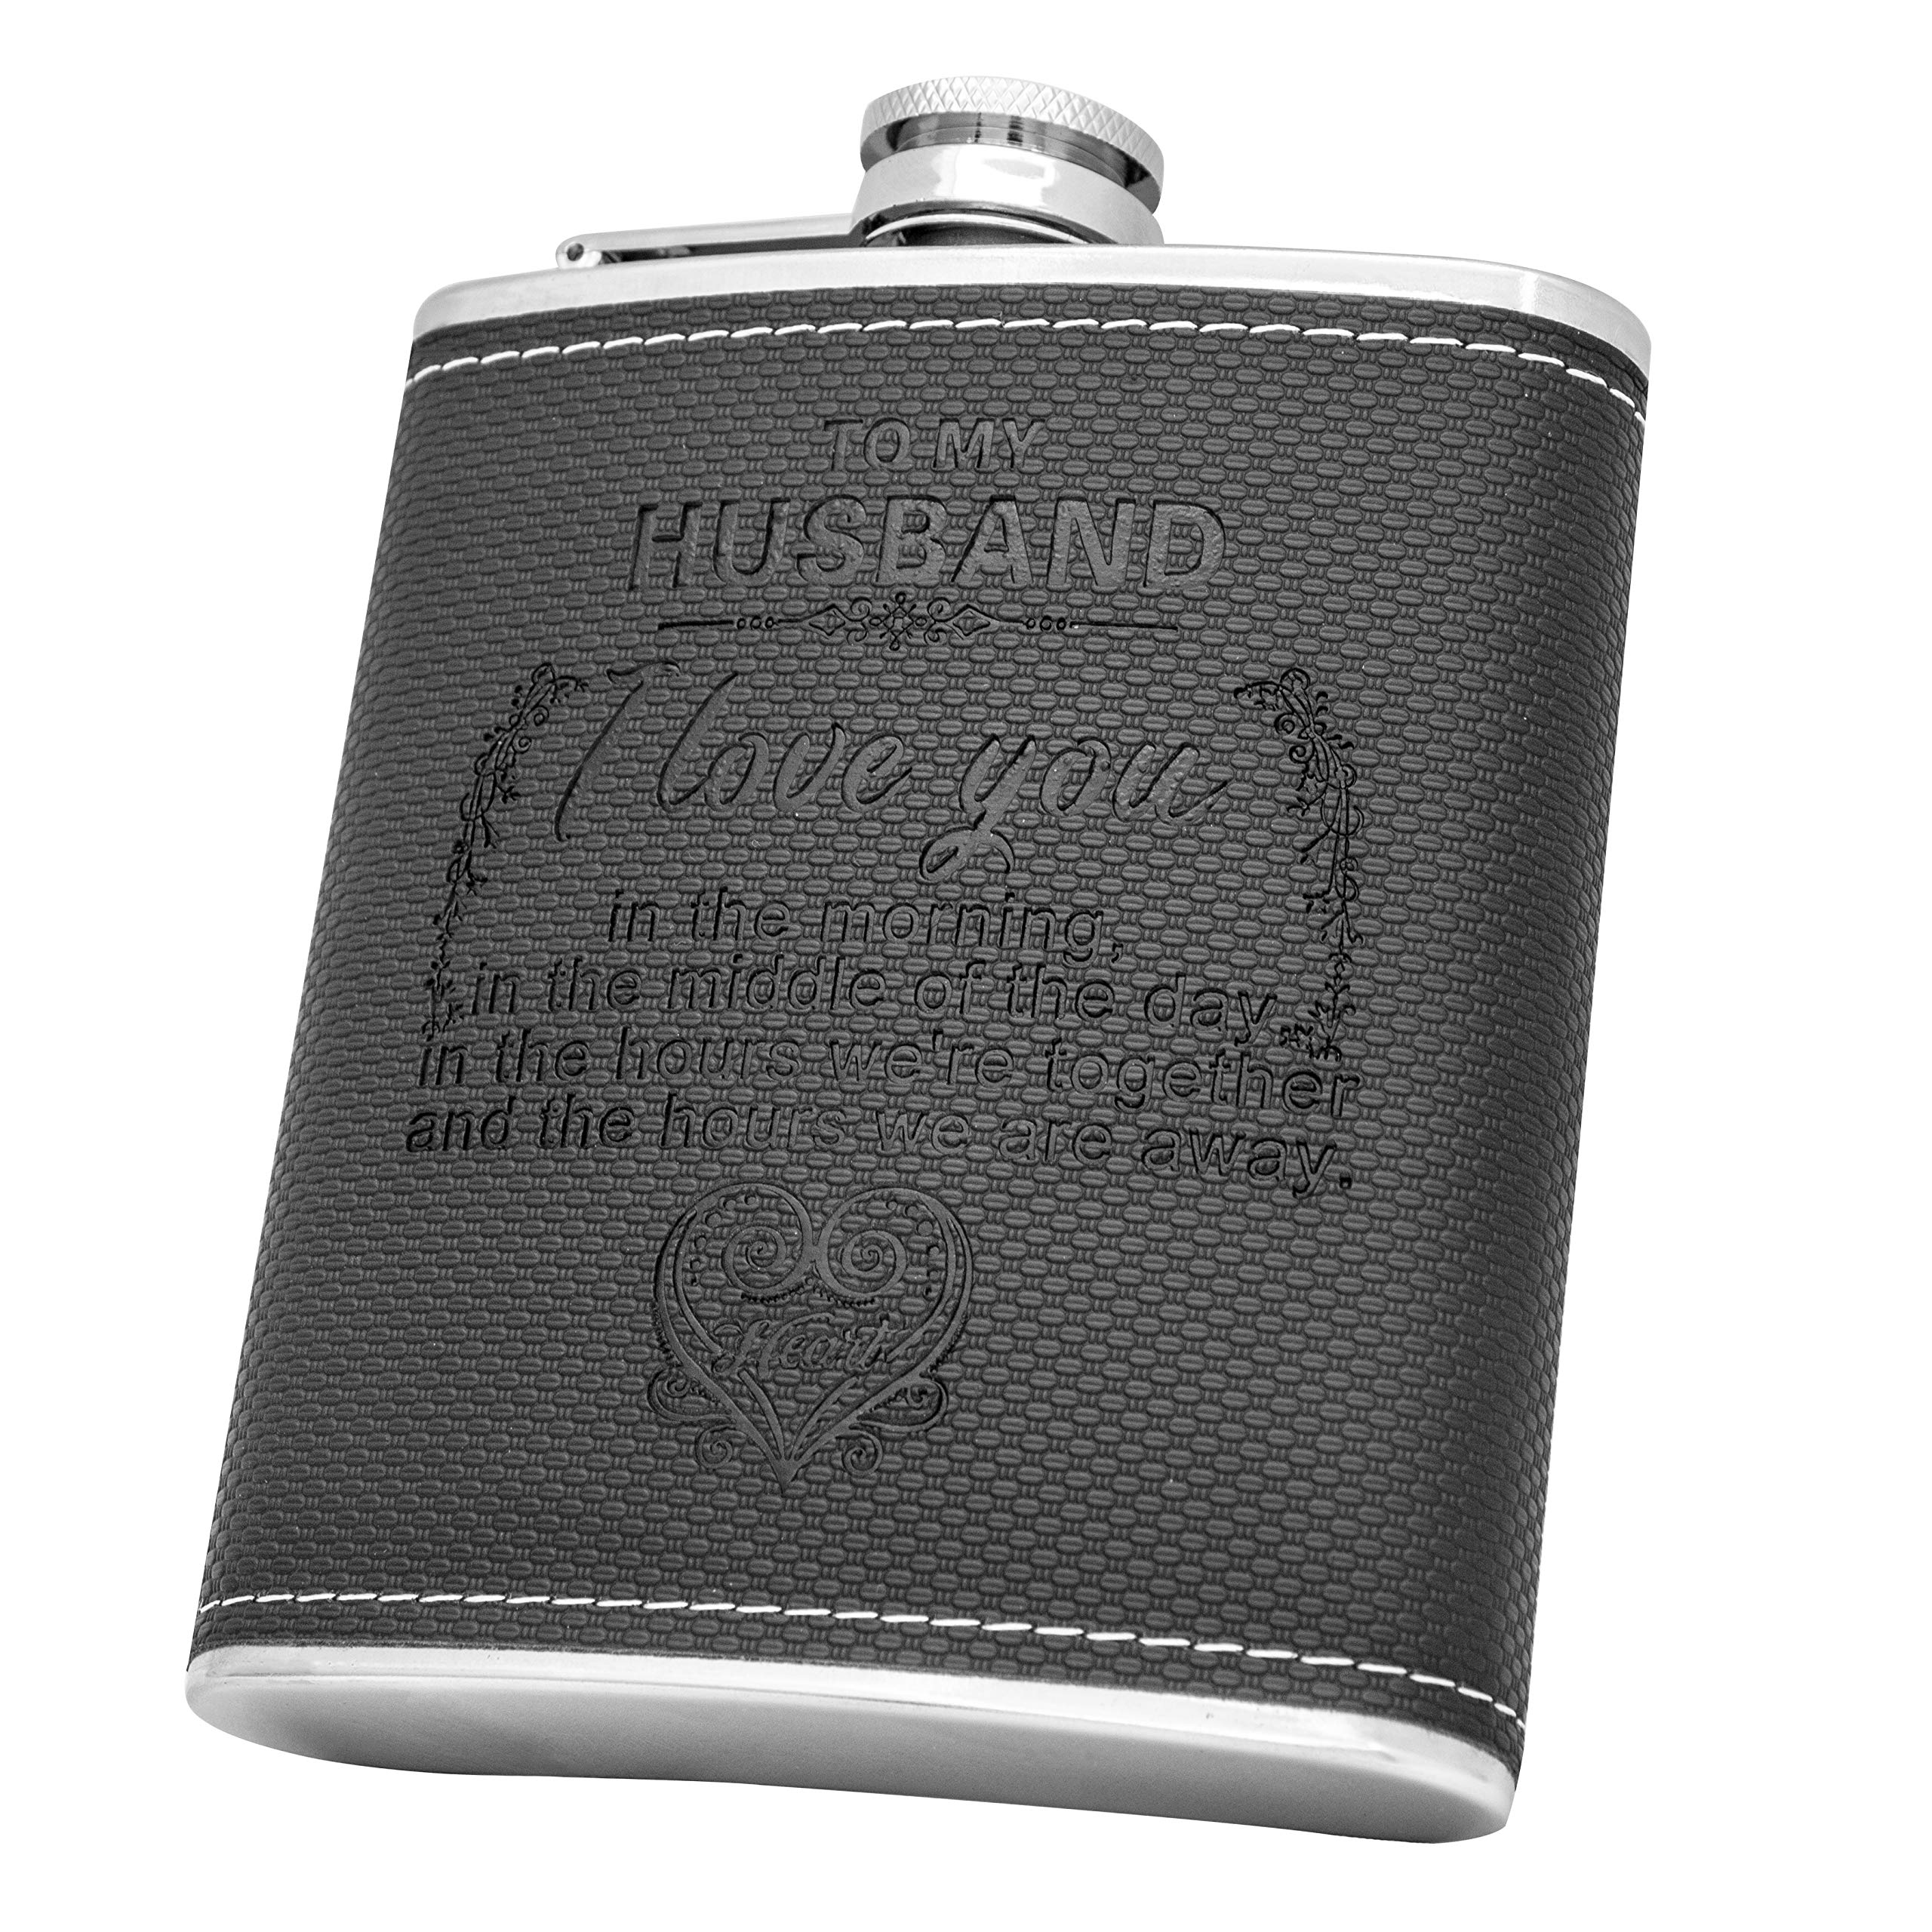 Personalized Flask Set- Engraved Custom Hip Flasks, Husband Gift- Stainless Steel with Leather Flask Gifts For Men, Wedding Favor Customized Wedding, Boyfriend Man Hip Gift Set (Black-For Husband)